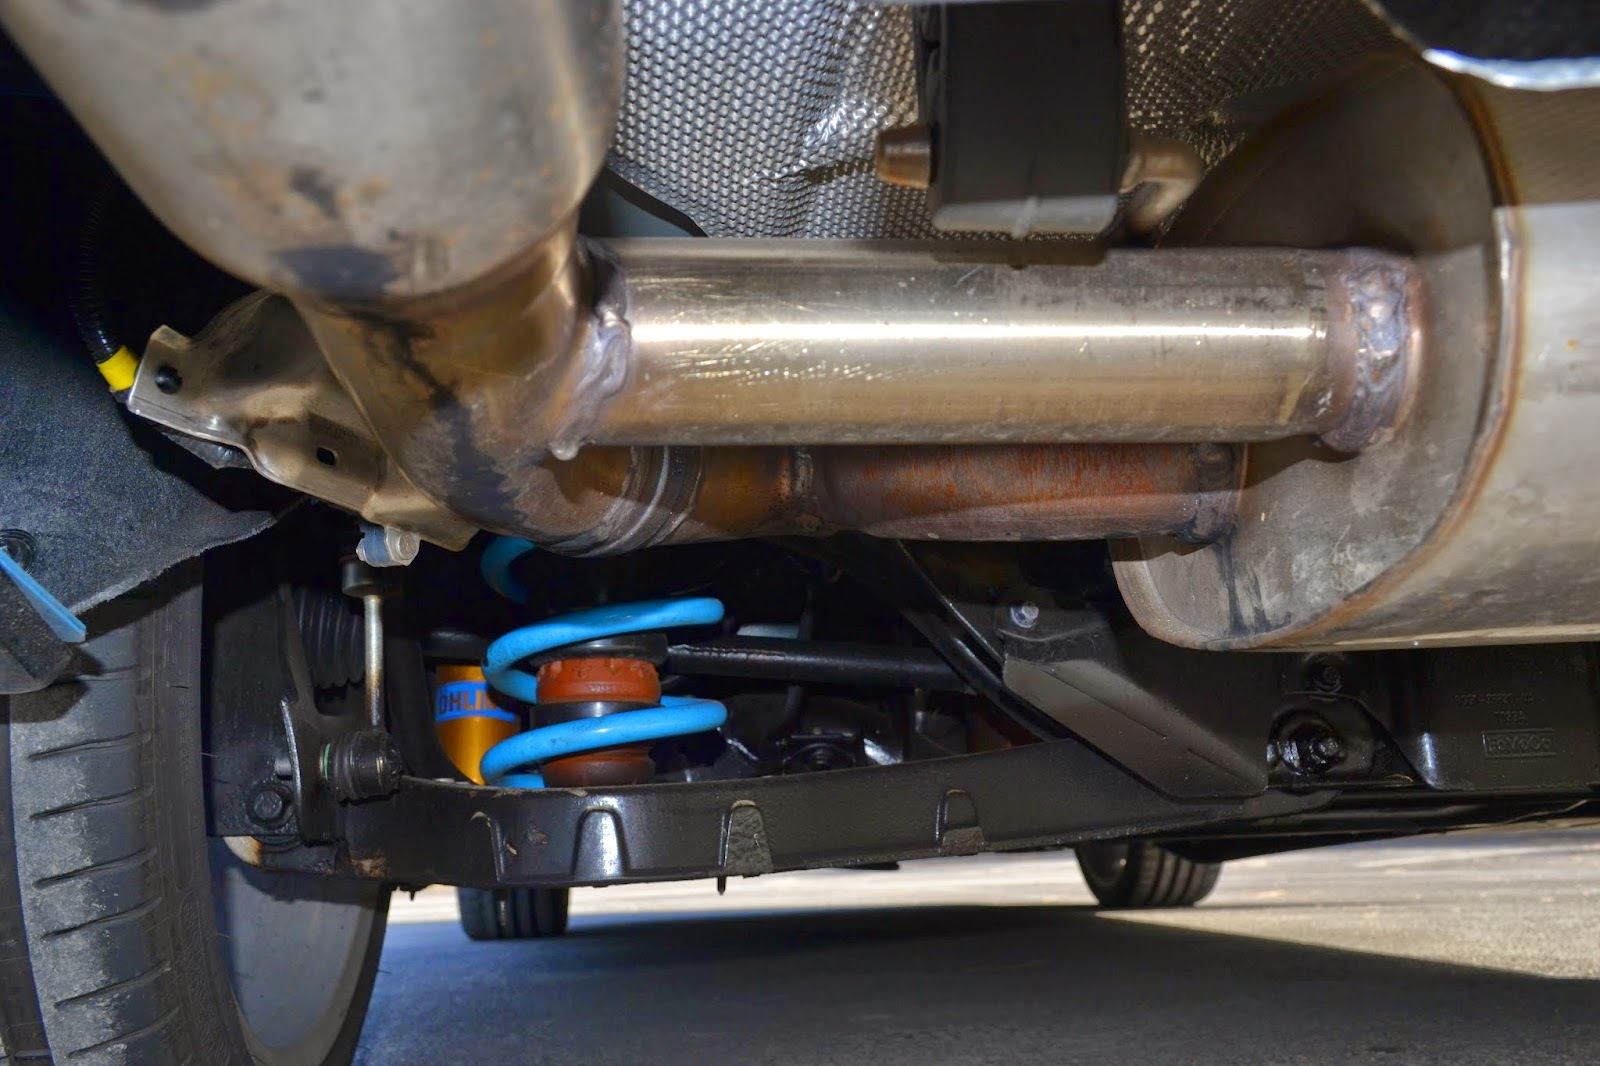 A look at those trick Ohlins adjustable shock absorbers